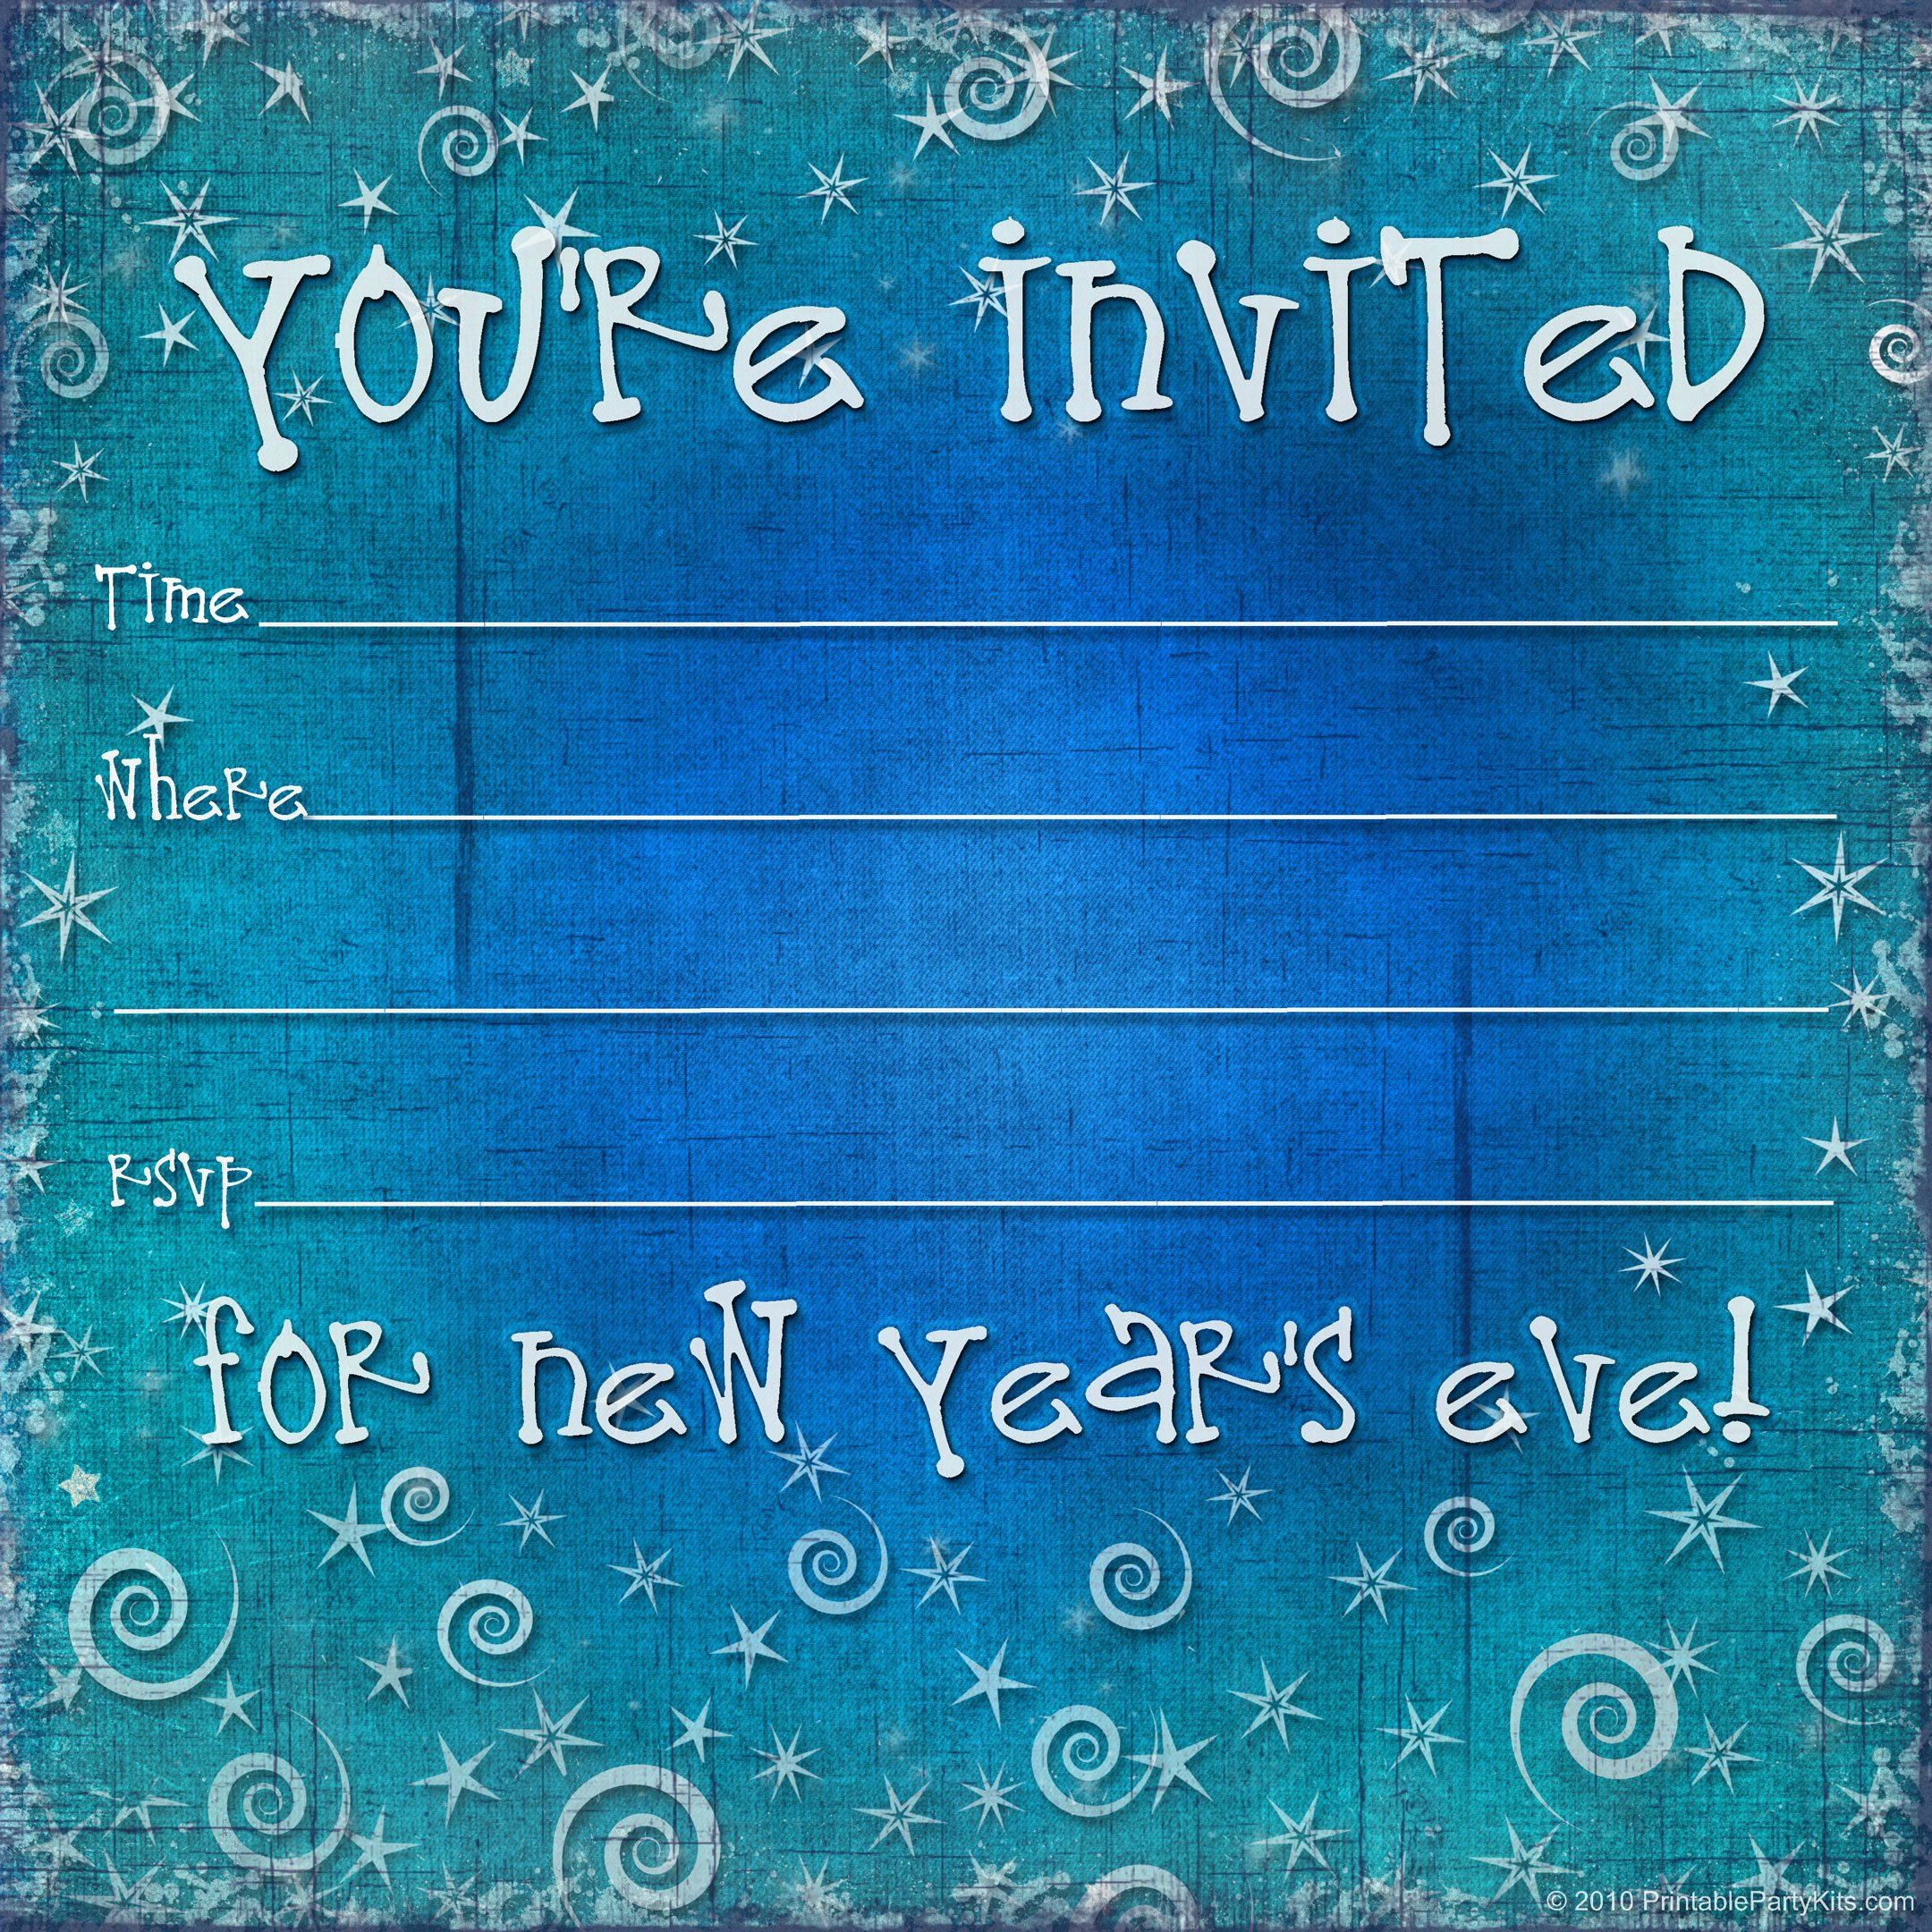 New Years Eve Invitation Templates Awesome Free Printable New Years Eve Party Invitation Template Printable Party Kits